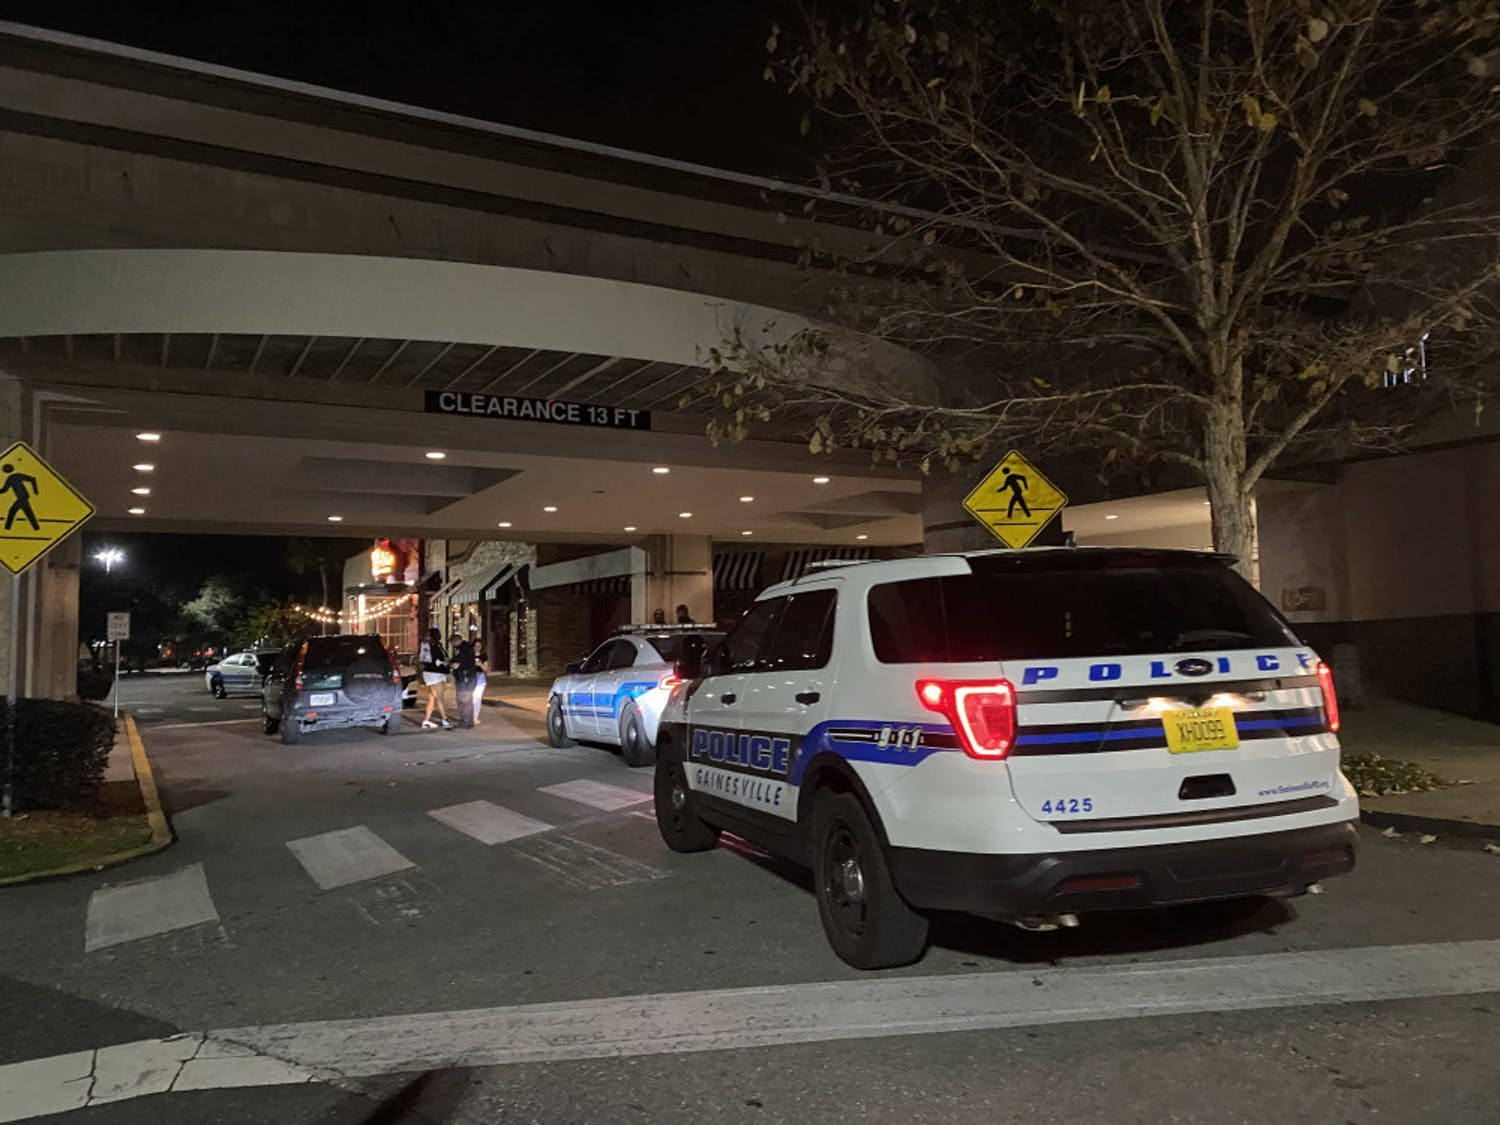 Law enforcement officers interview witnesses in front of Oaks Mall Thursday night after reports of a robbery in front of Pearle Vision, an eye care store located inside the mall.